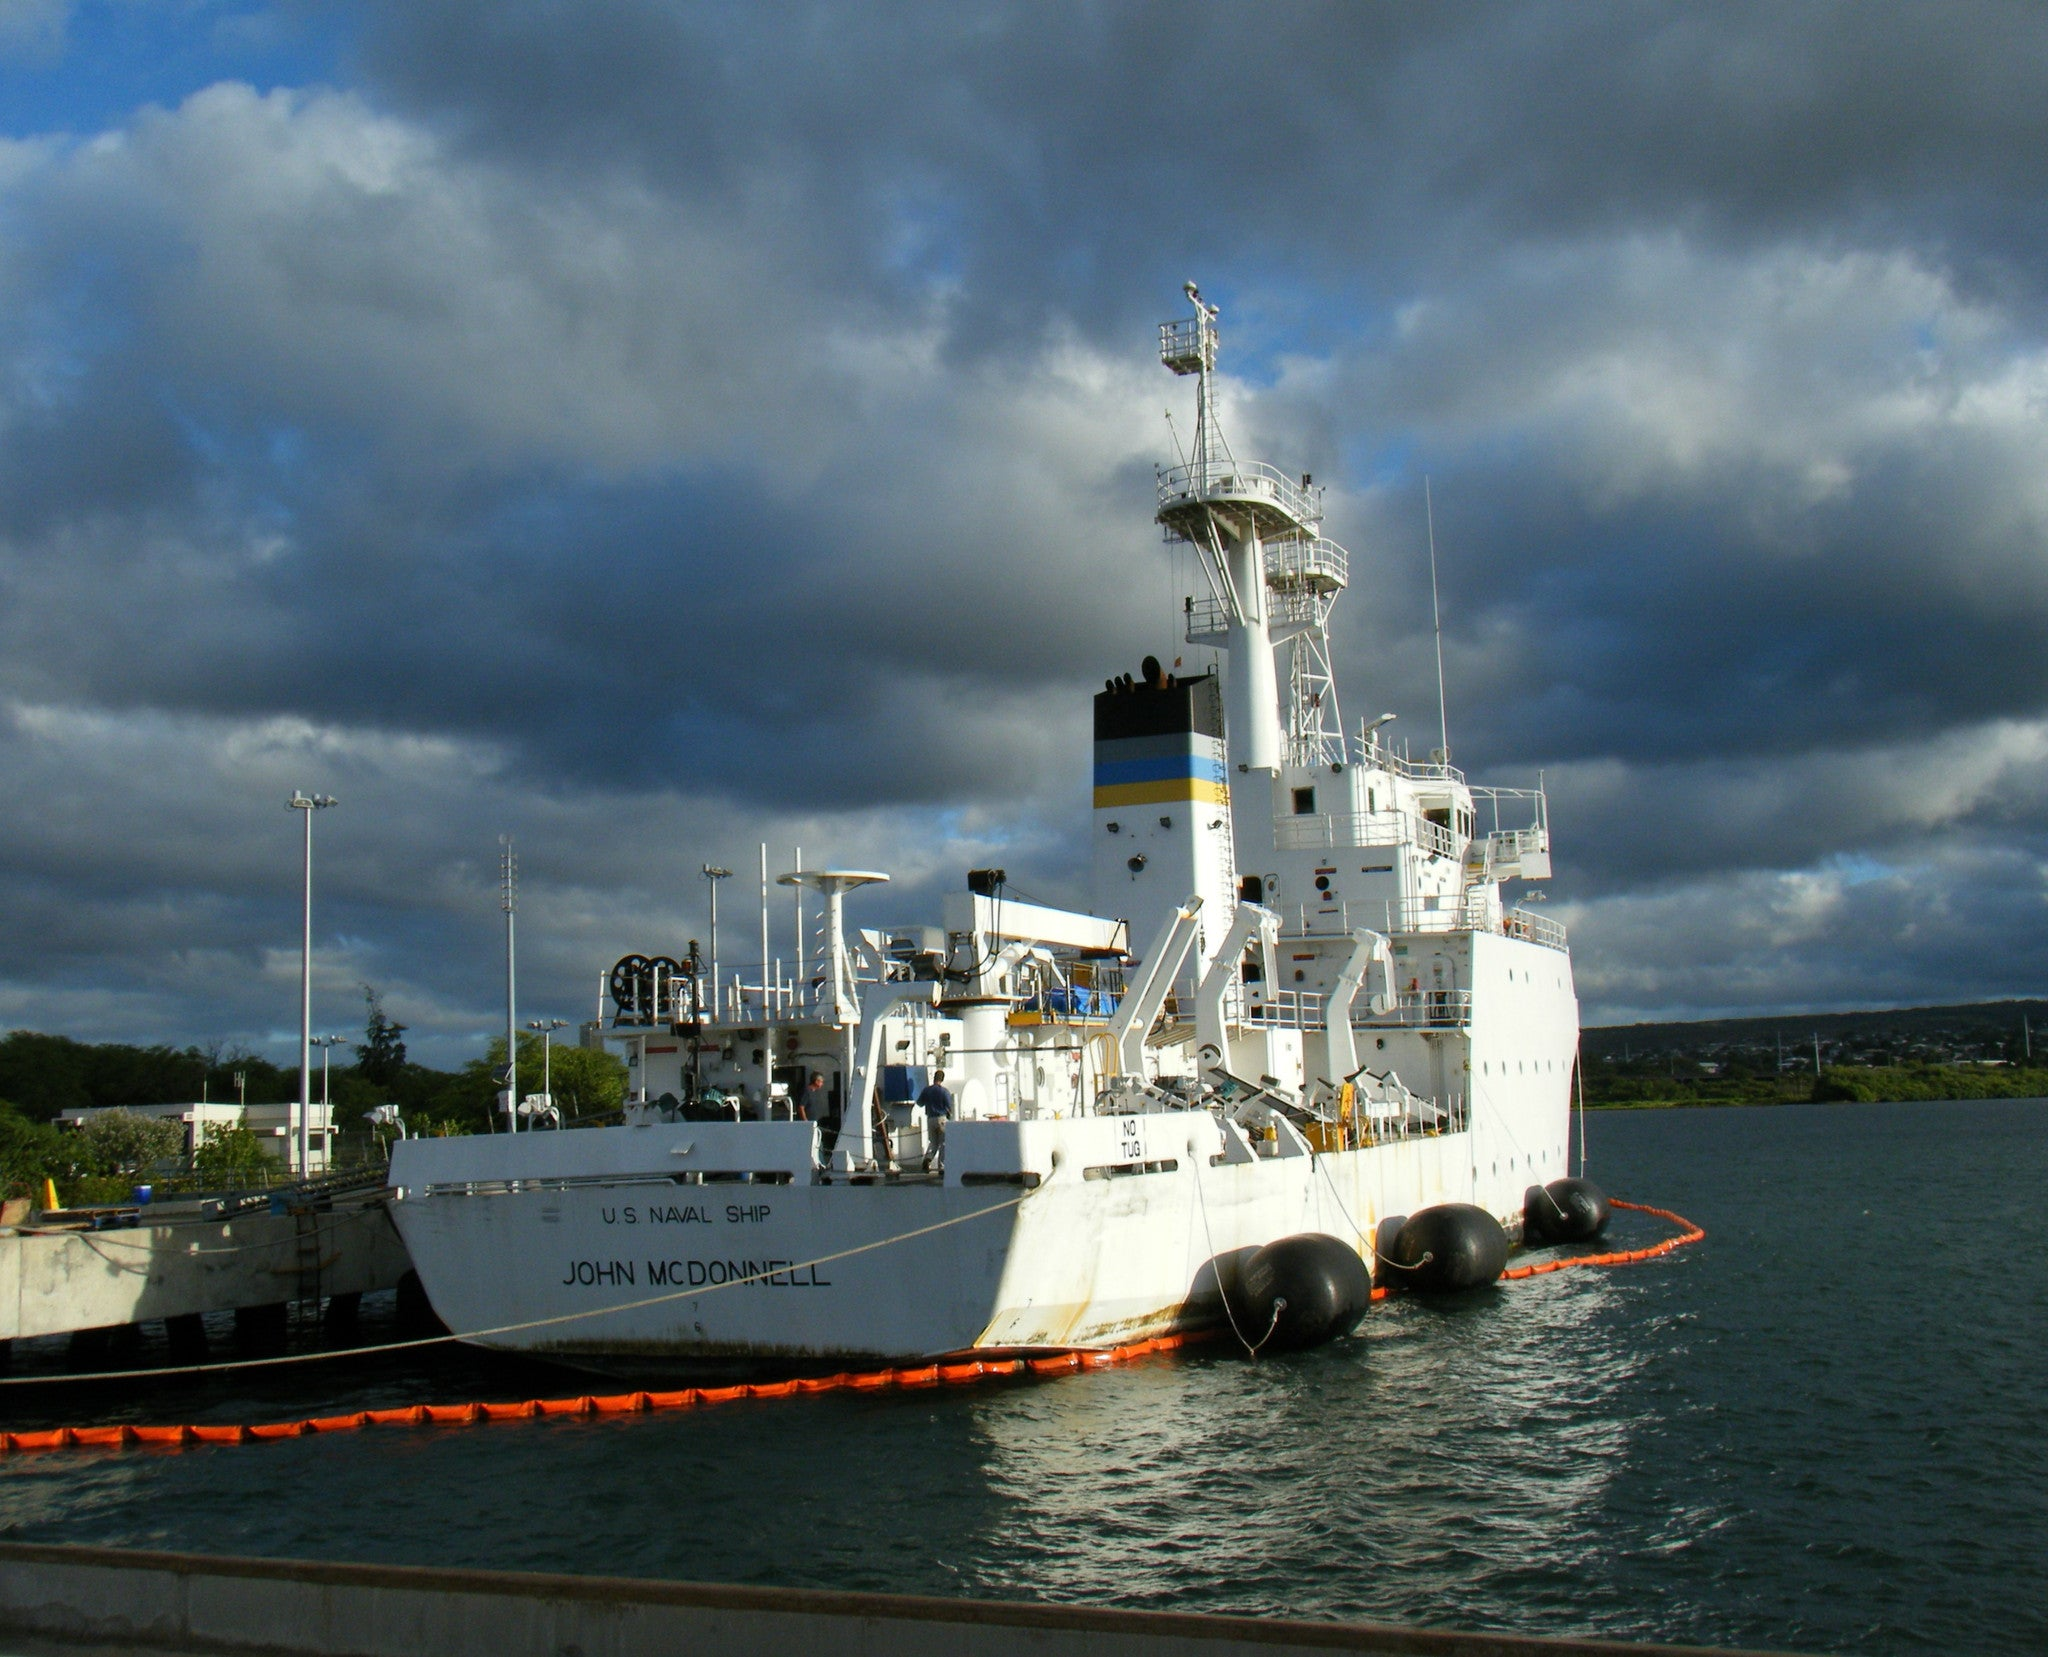 "Military Sealift Command Oceanographic Survey Ship USNS John McDonnell Pearl Harbor August 25, 2010 - 8 x 10""Photograph"